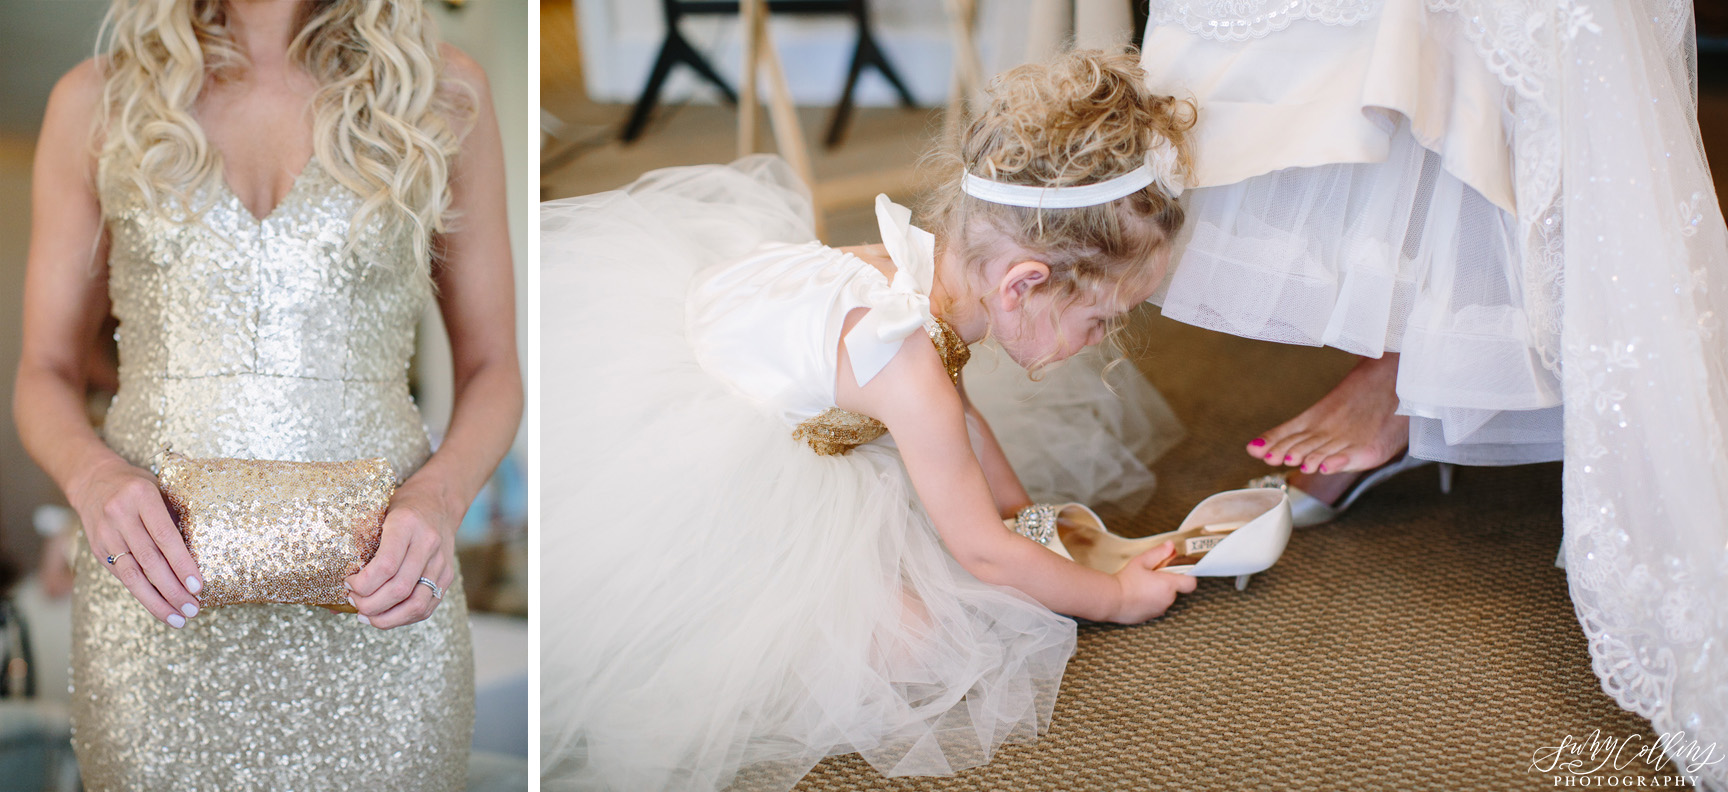 poses, indoor, romantic, spring, light and airy, natural light, ideas, passion, artistic, creative, inspiration, editorial, art, lighting, love, Knoxville, Tennessee, Cherokee country club, vibrant, colorful, bright, dress, flower girl, getting ready, bride